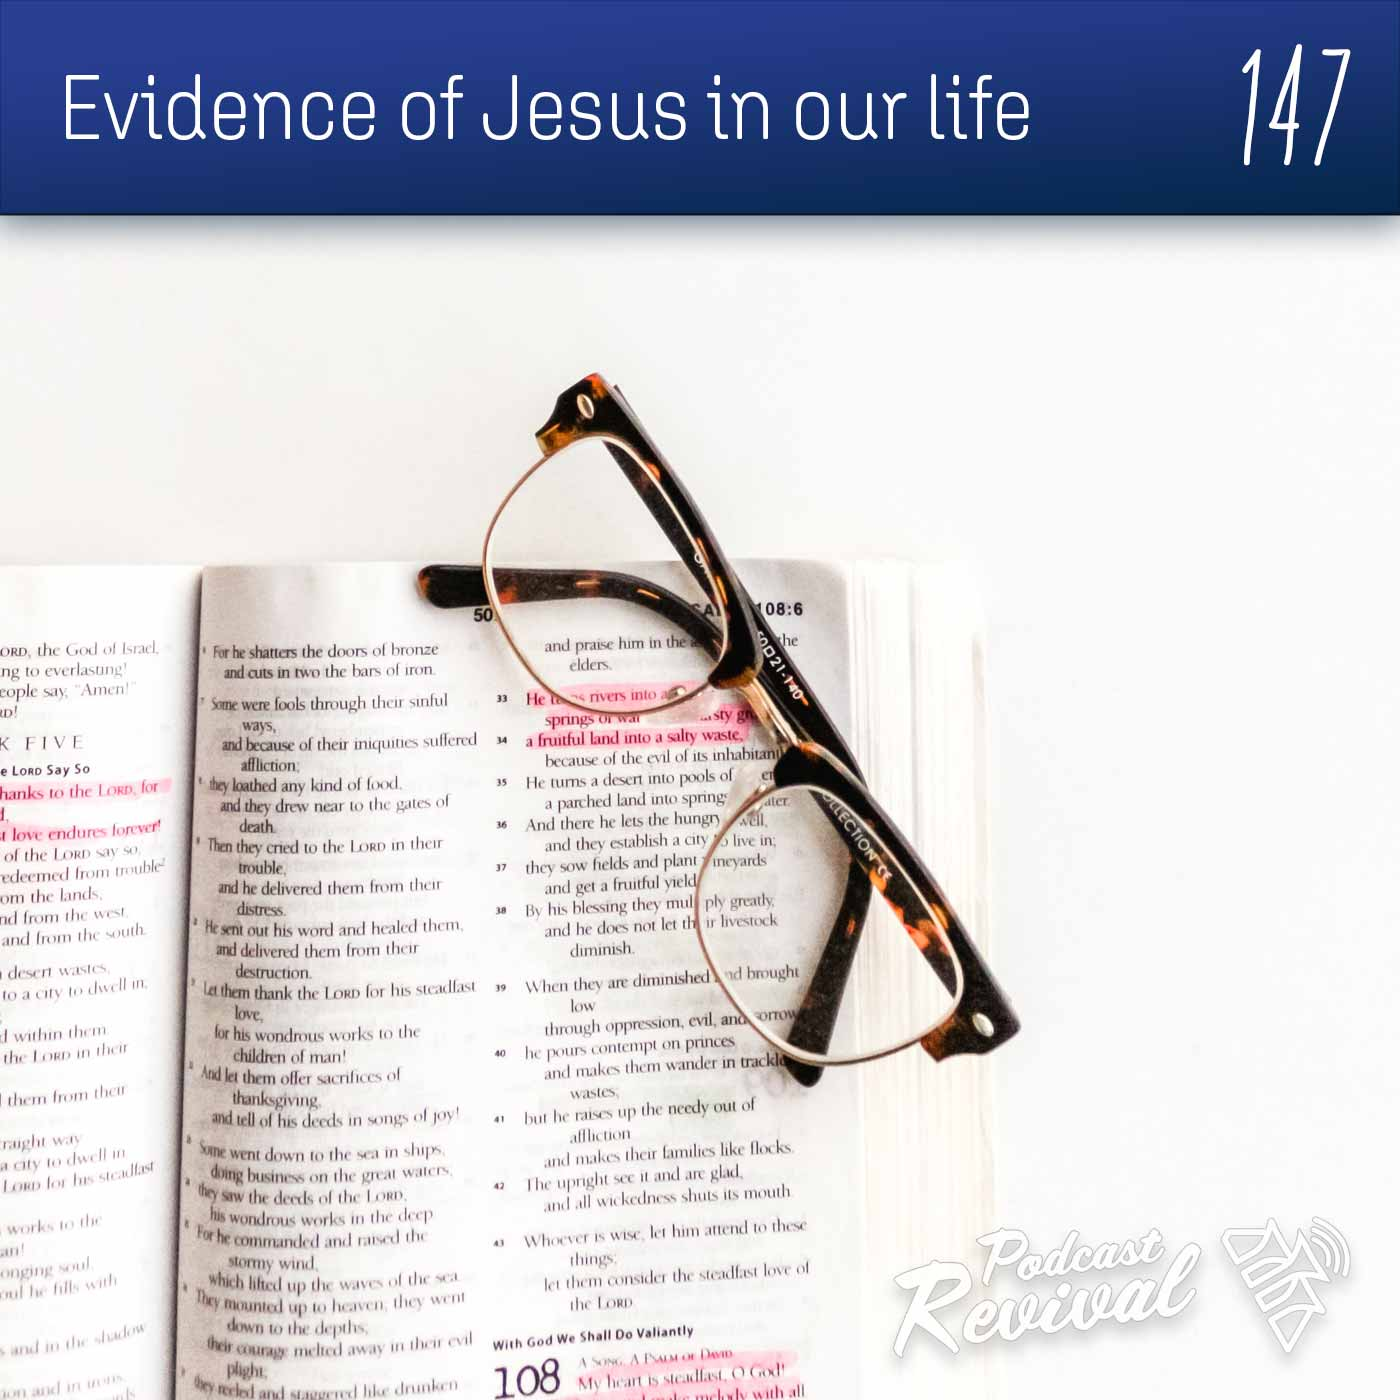 Evidence of Jesus in our life